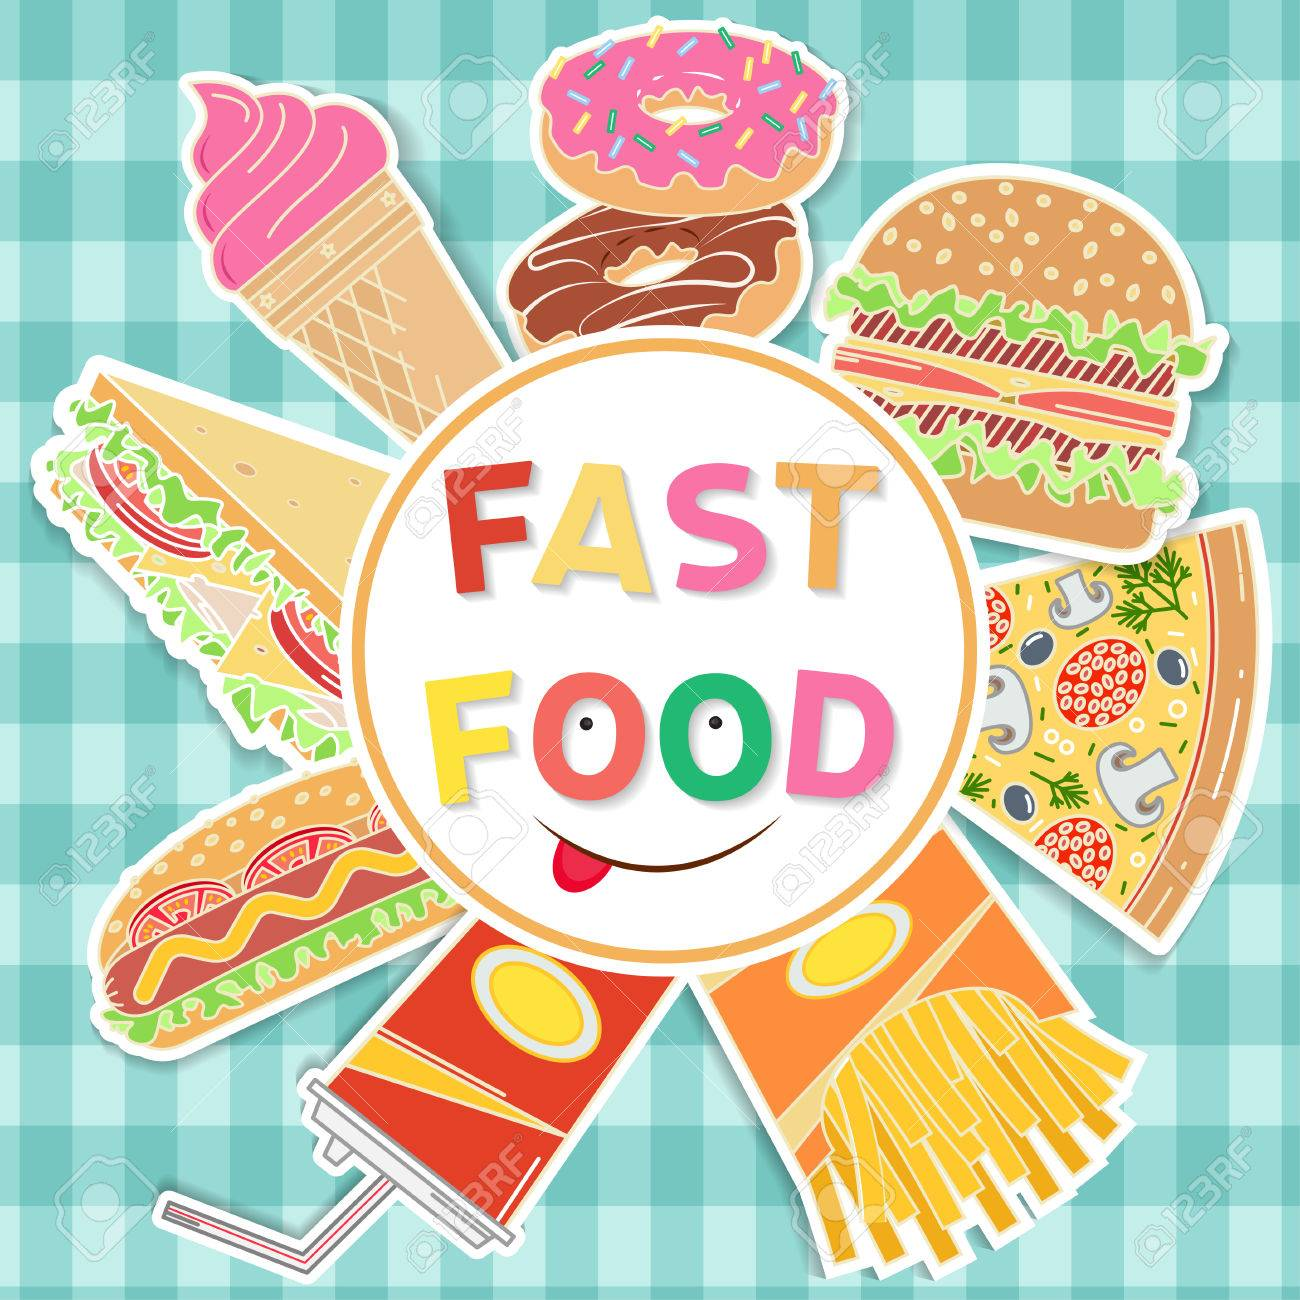 Fast Food Colorful Flat Design Elements On The Theme Of The